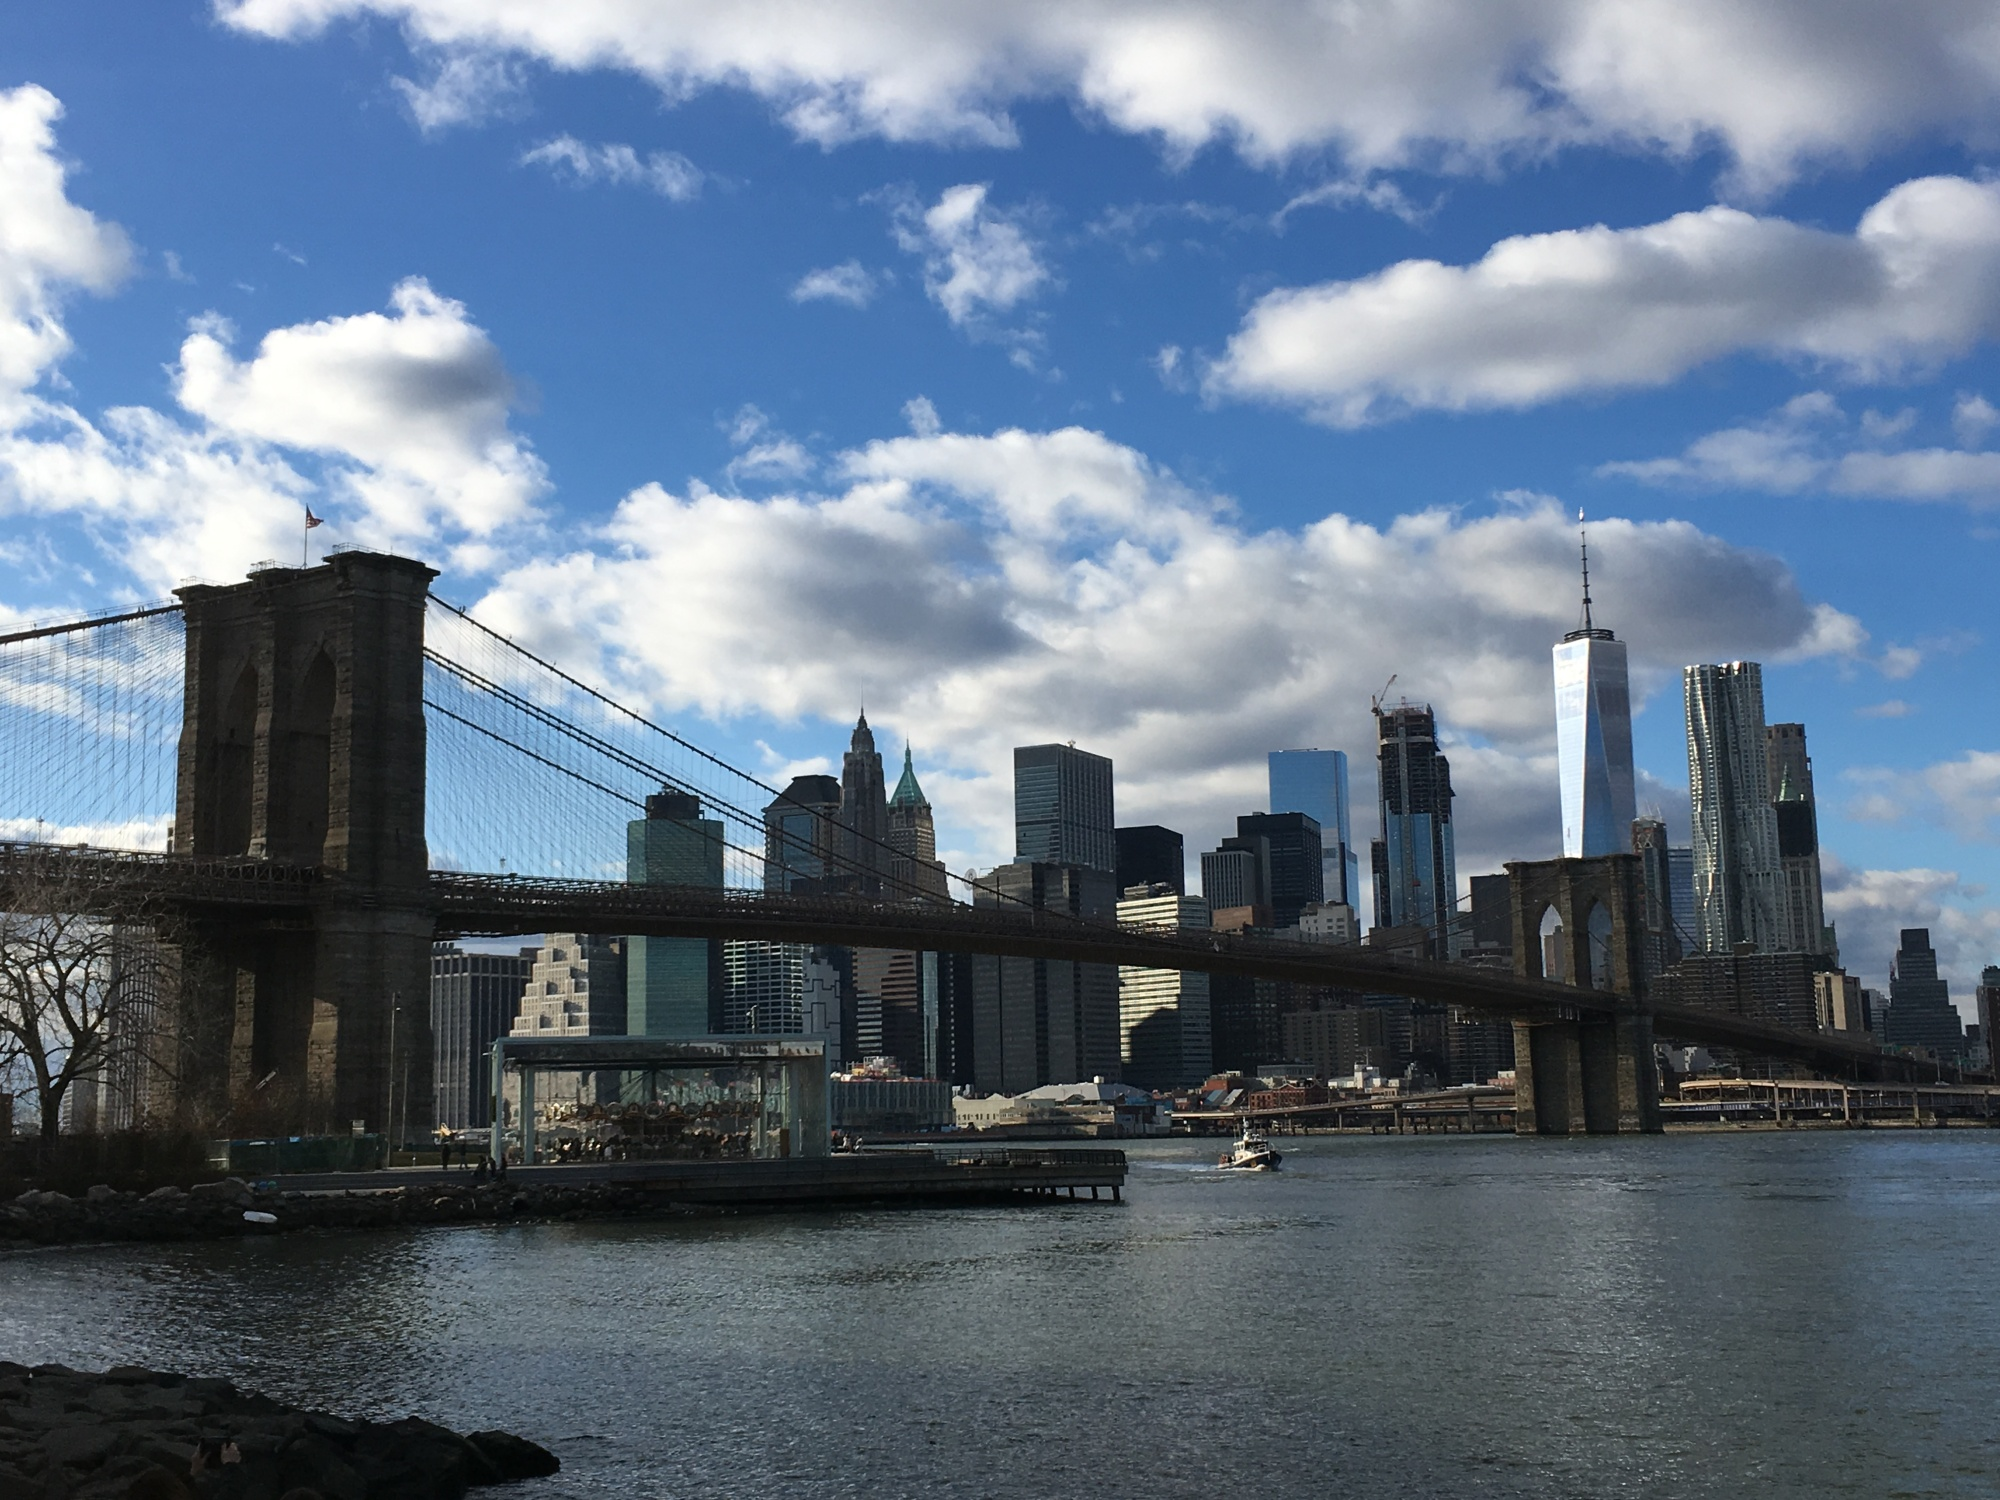 The Brooklyn Bridge and the skyline of Lower Manhattan